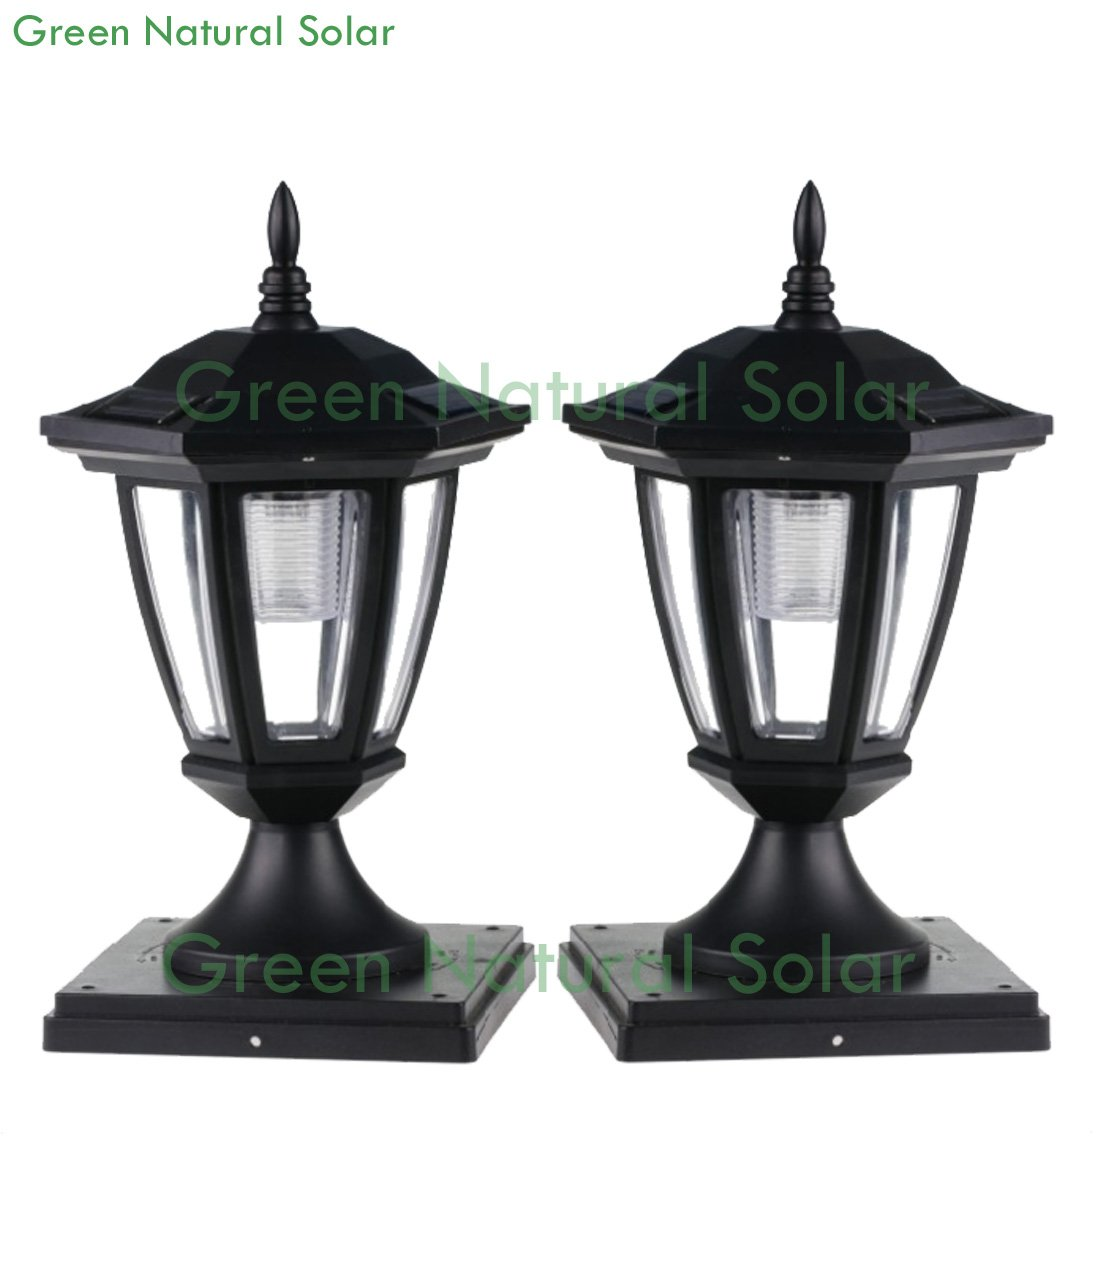 6-Pack BLACK Solar Hexagon Post Cap Lights with WHITE LEDS for 4X4 Wood Fence Post -GREEN NATURAL SOLAR